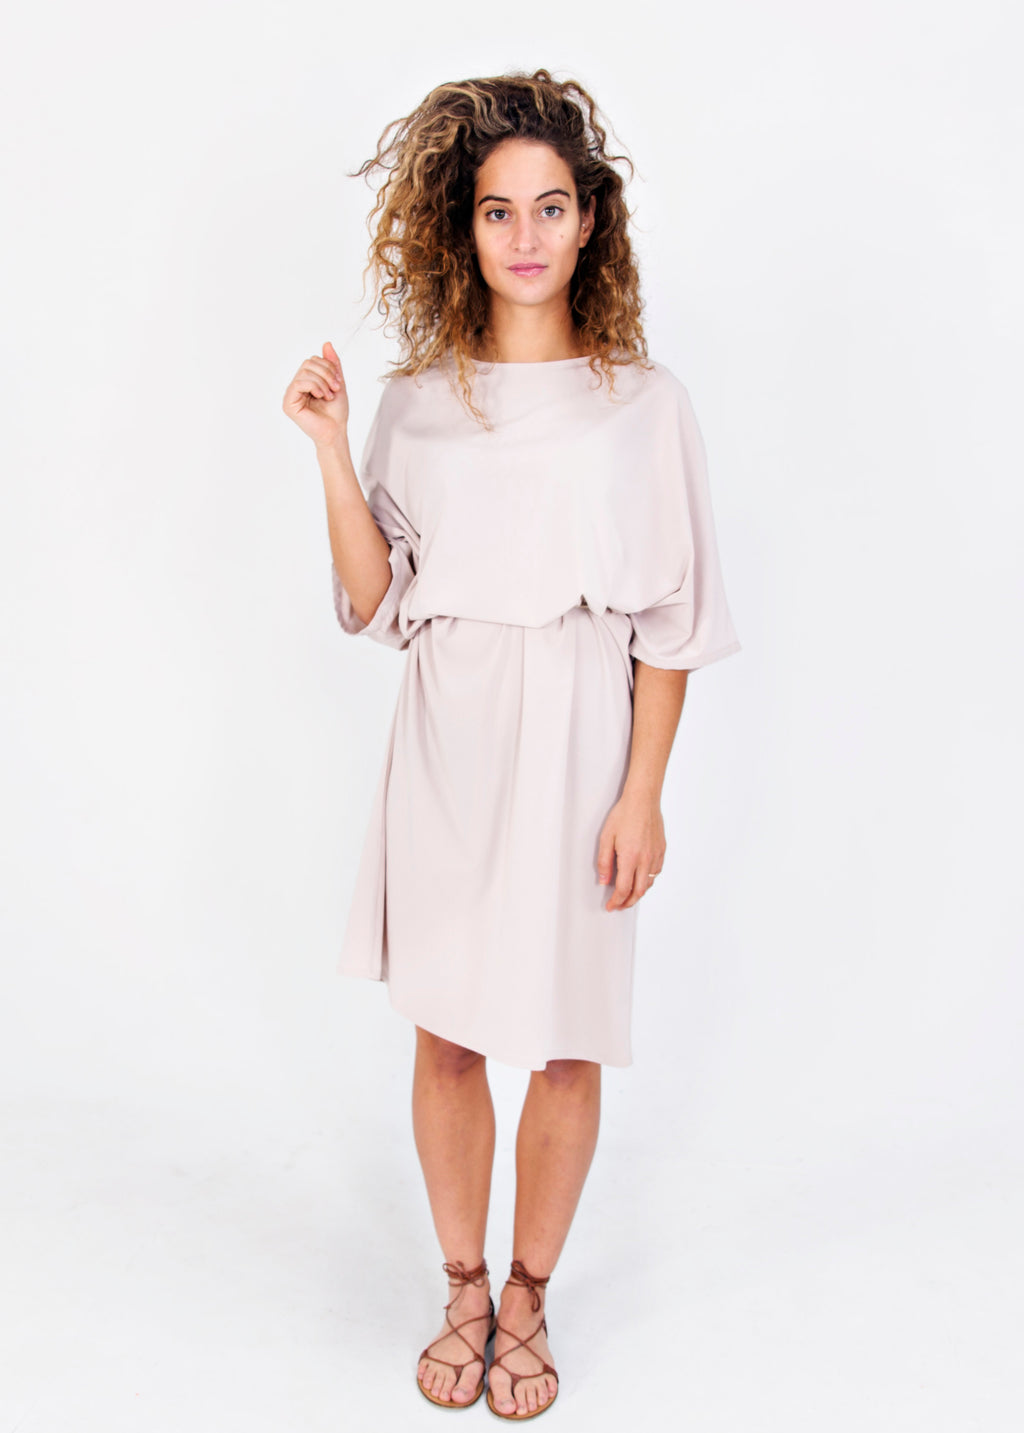 EZ Dress - Cream